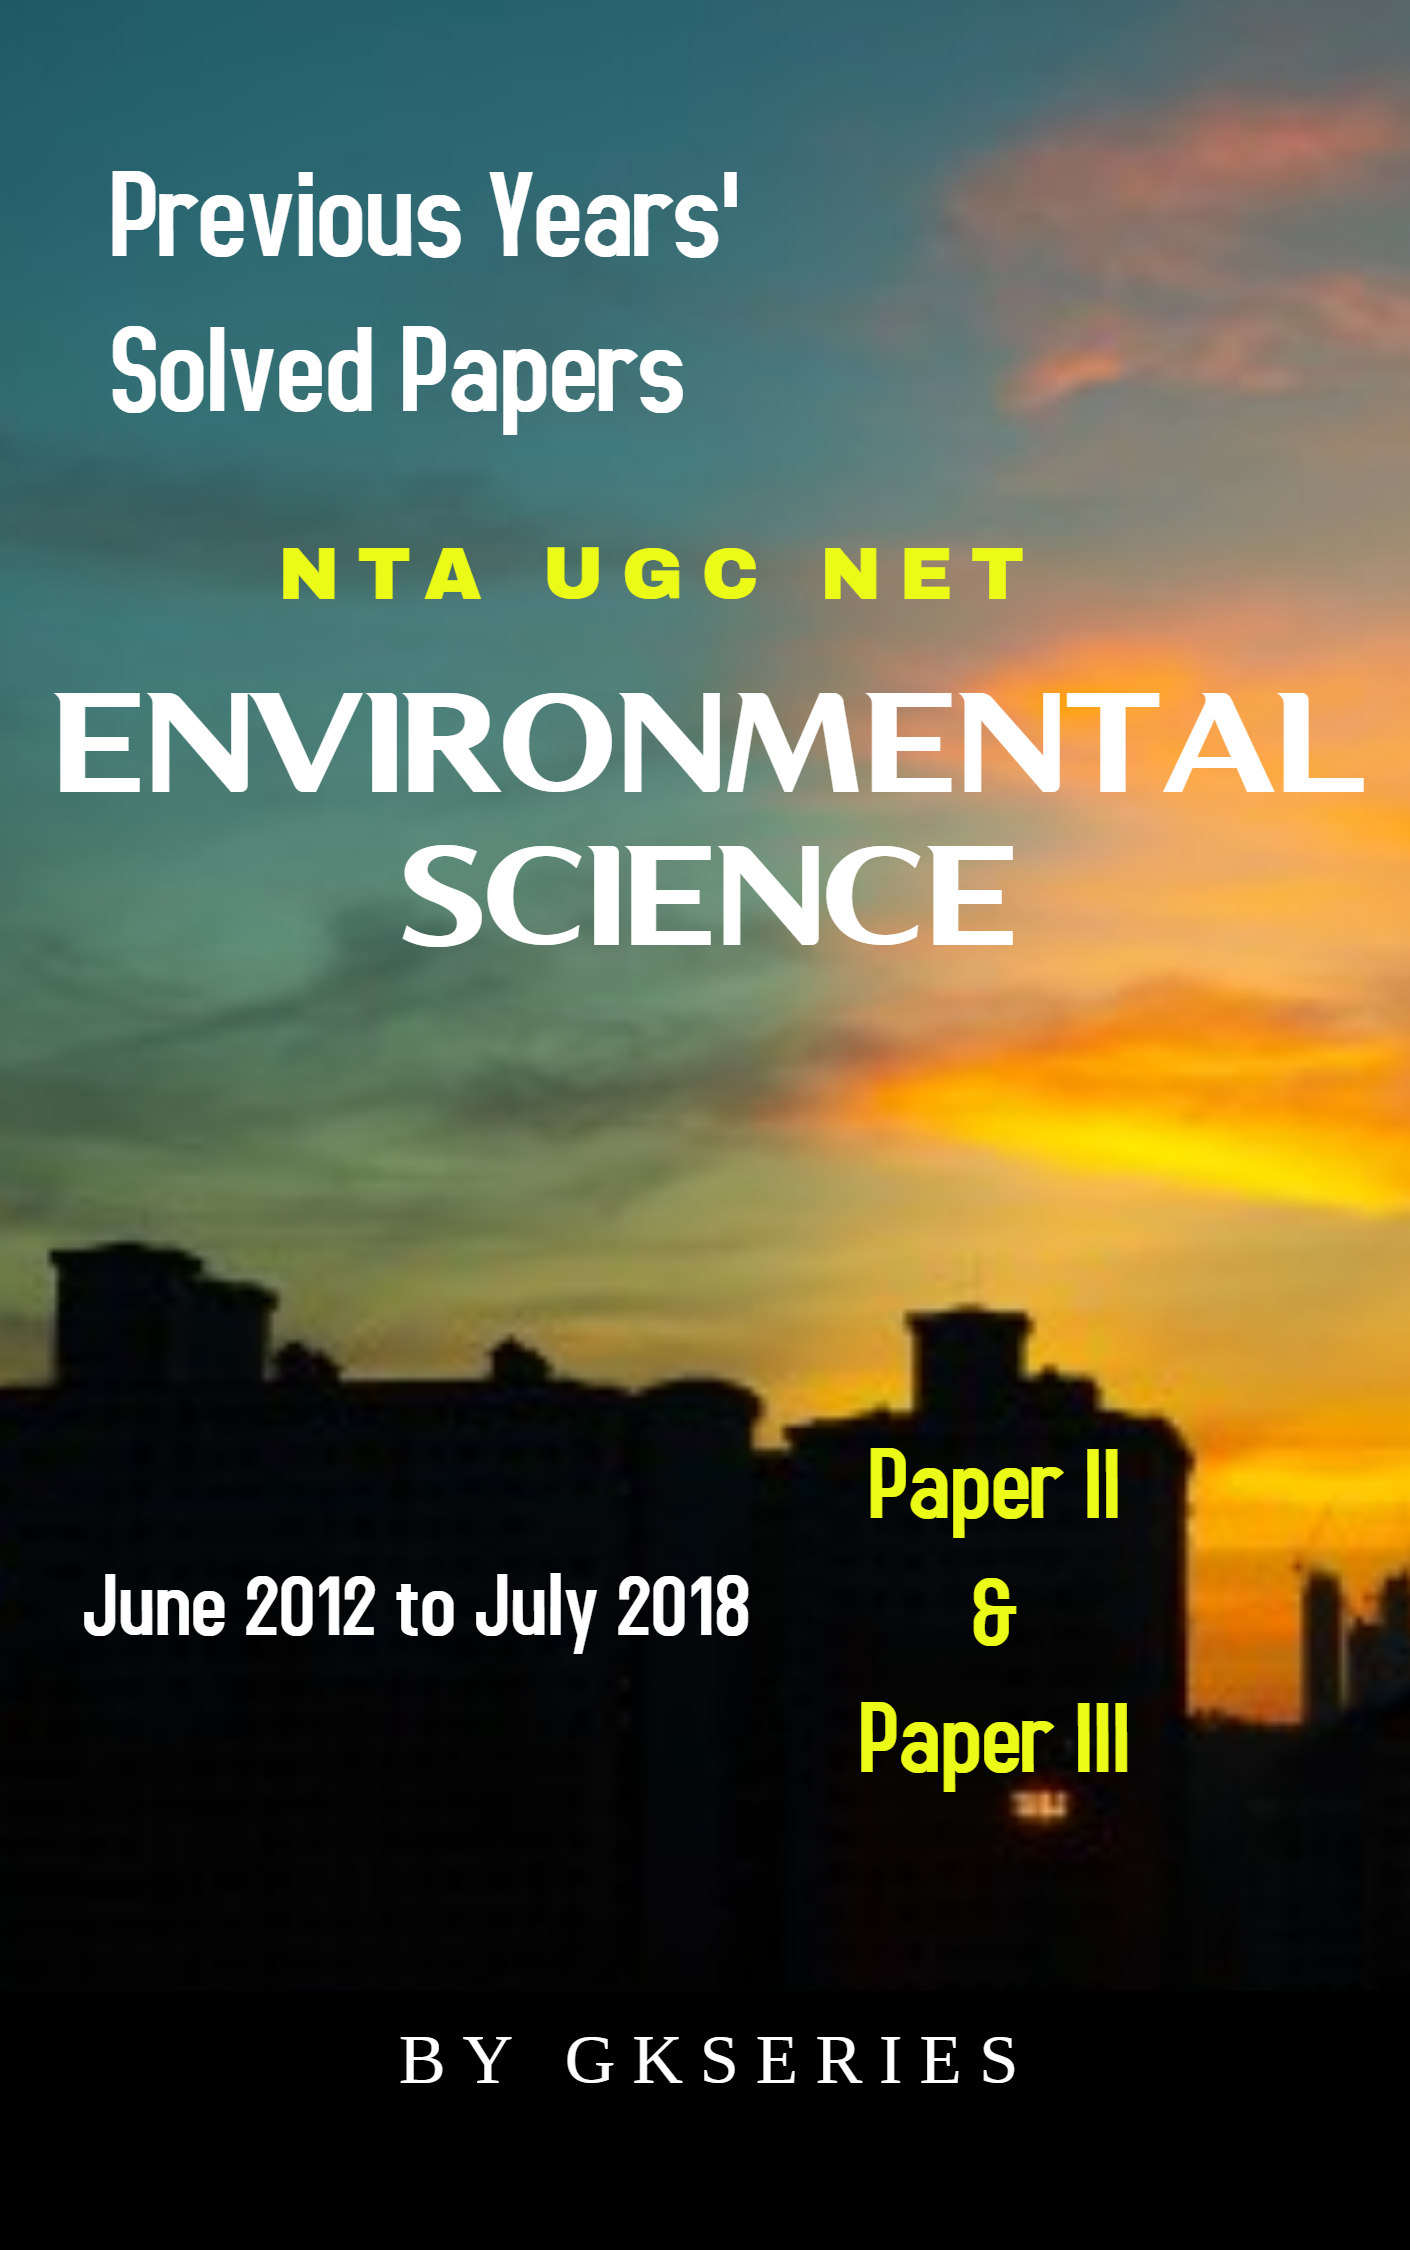 NTA UGC NET ENVIRONMENTAL SCIENCE PREVIOUS YEARS SOLVED PAPERS